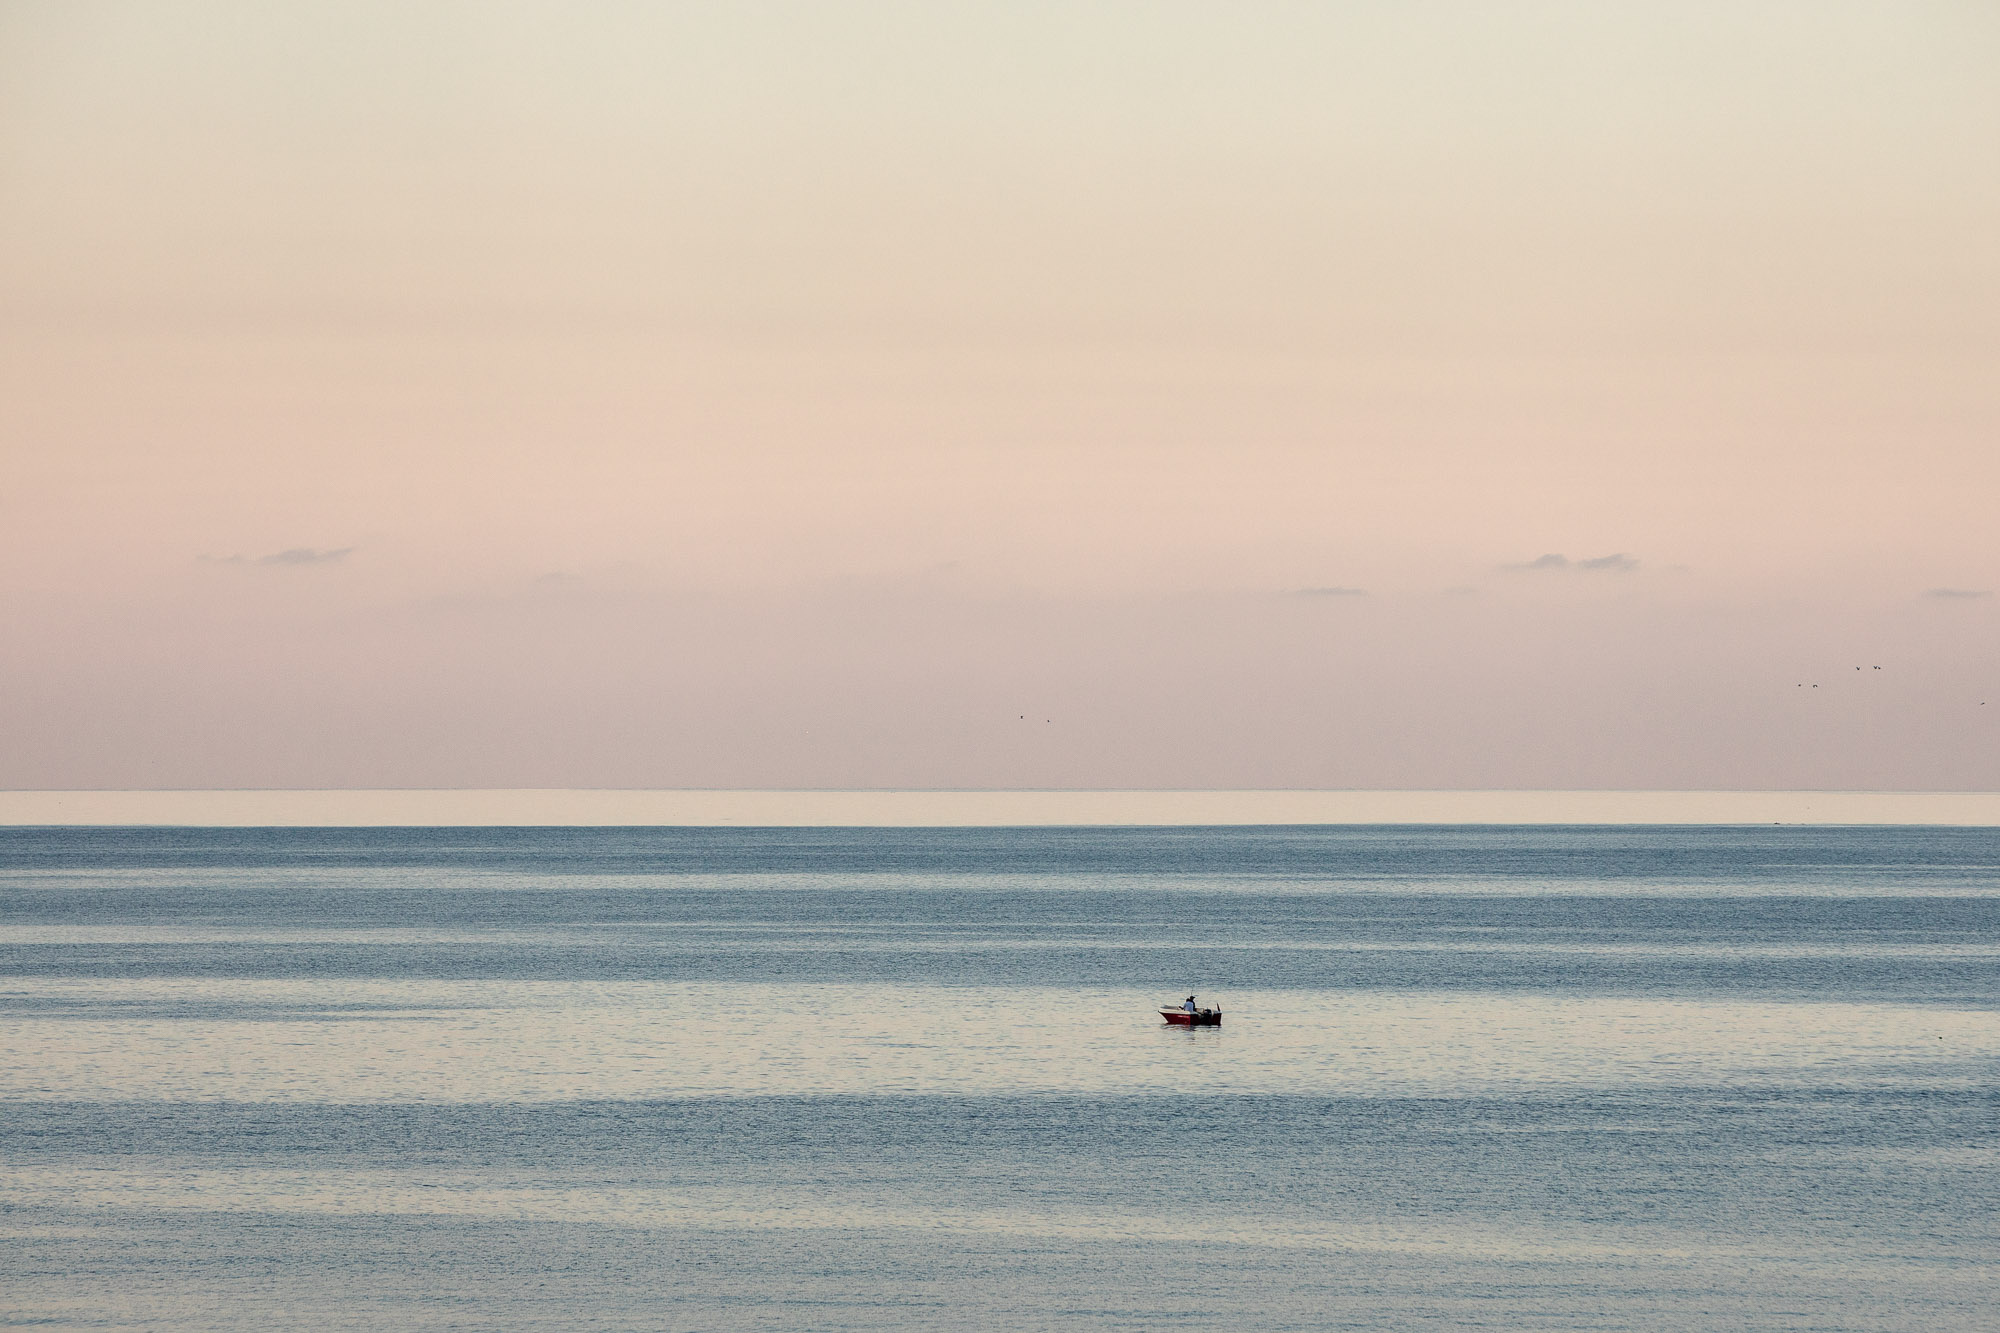 fishing boat on the Black Sea